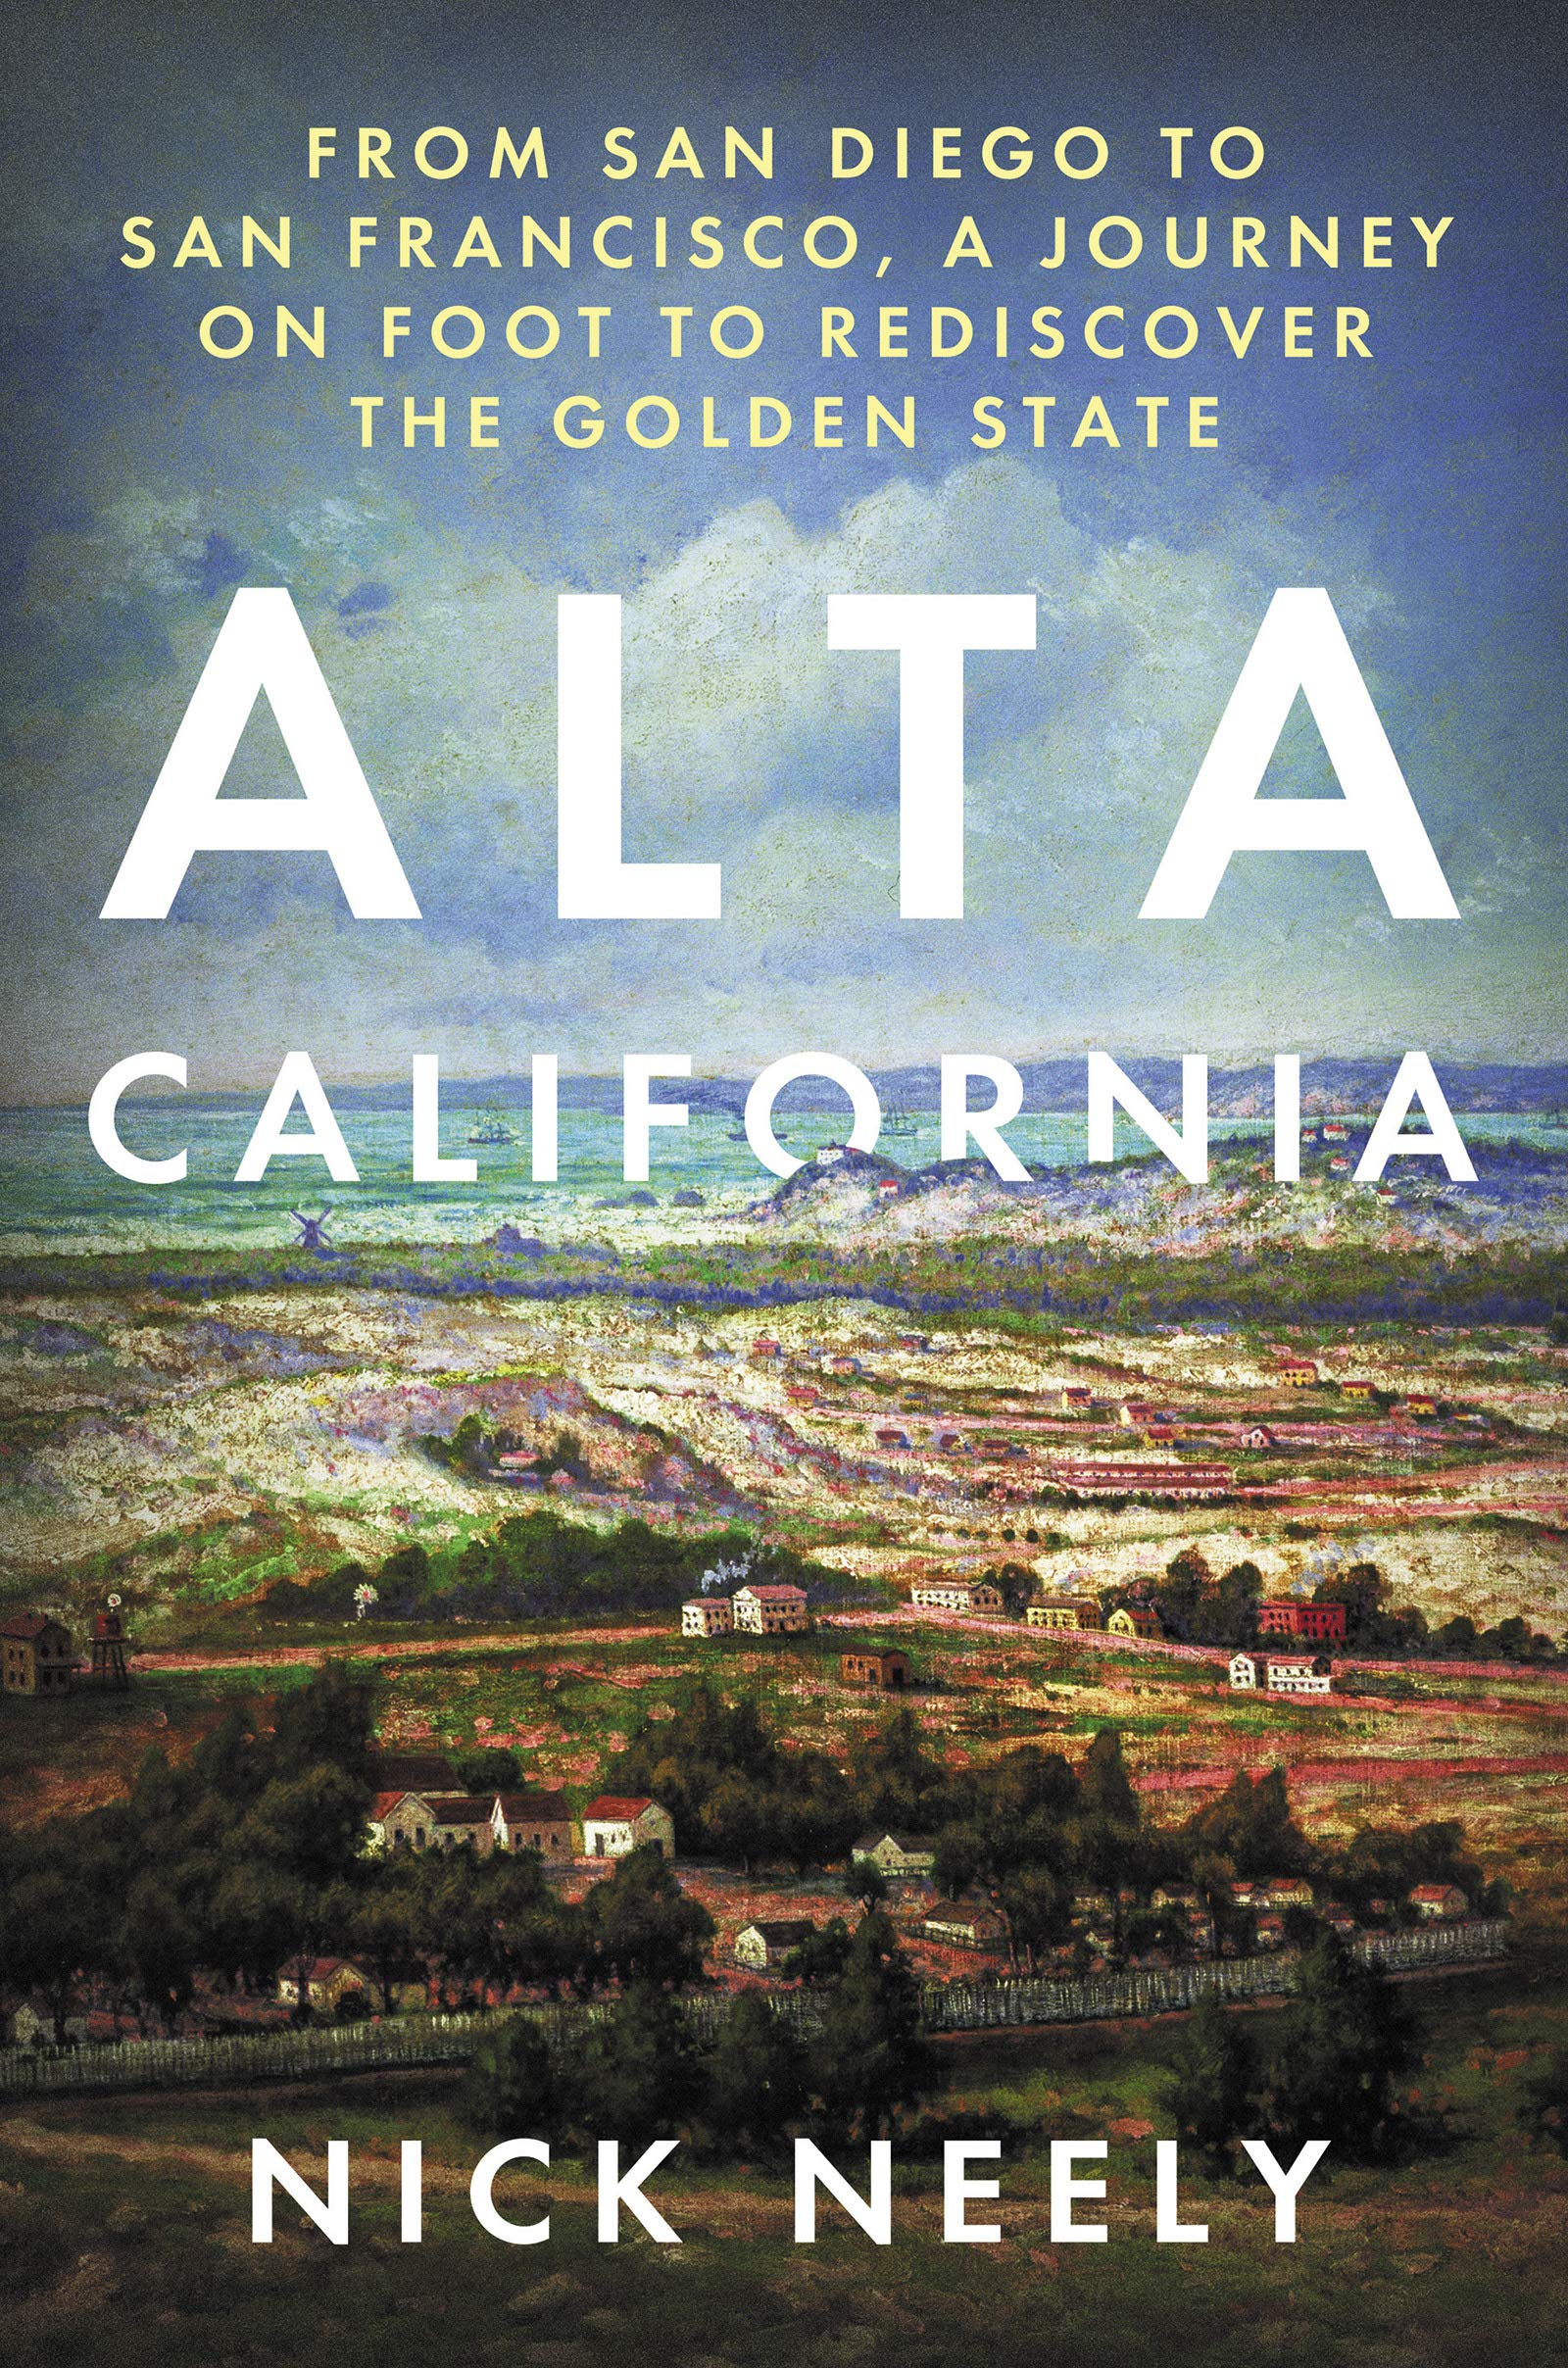 Download Alta California: From San Diego To San Francisco, A Journey On Foot To Rediscover The Golden State 